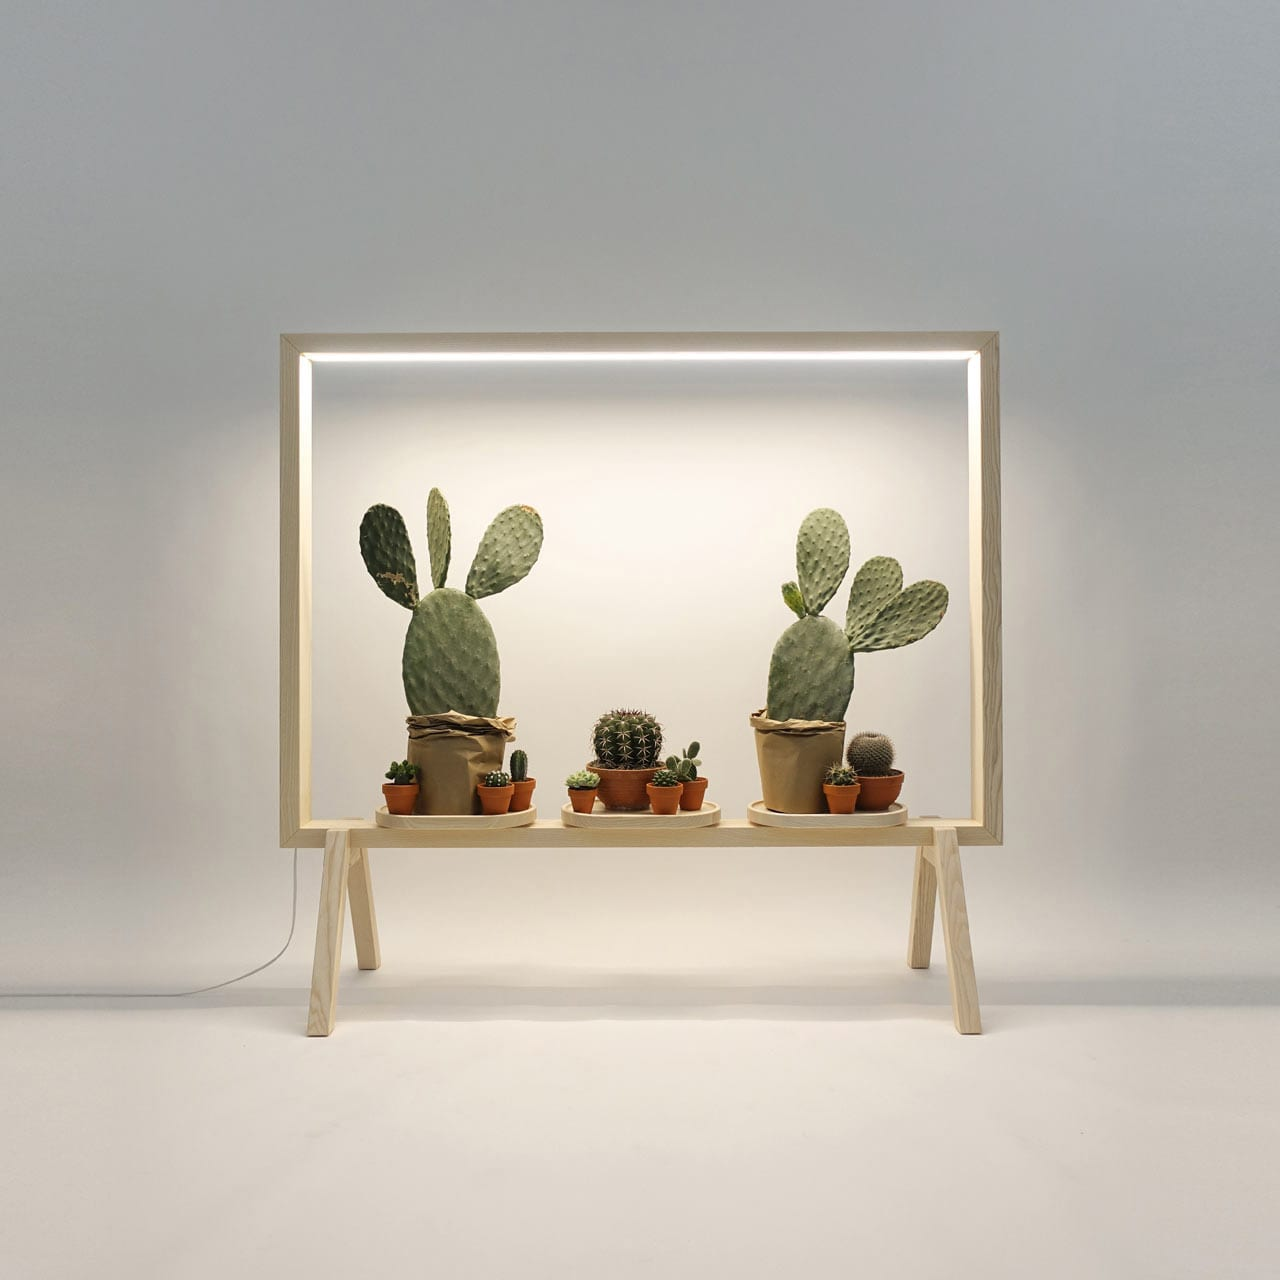 GreenFrame Johan Kauppi Illuminated Frame for Potted Plants at Stockholm Furniture Fair 2018 | Yellowtrace